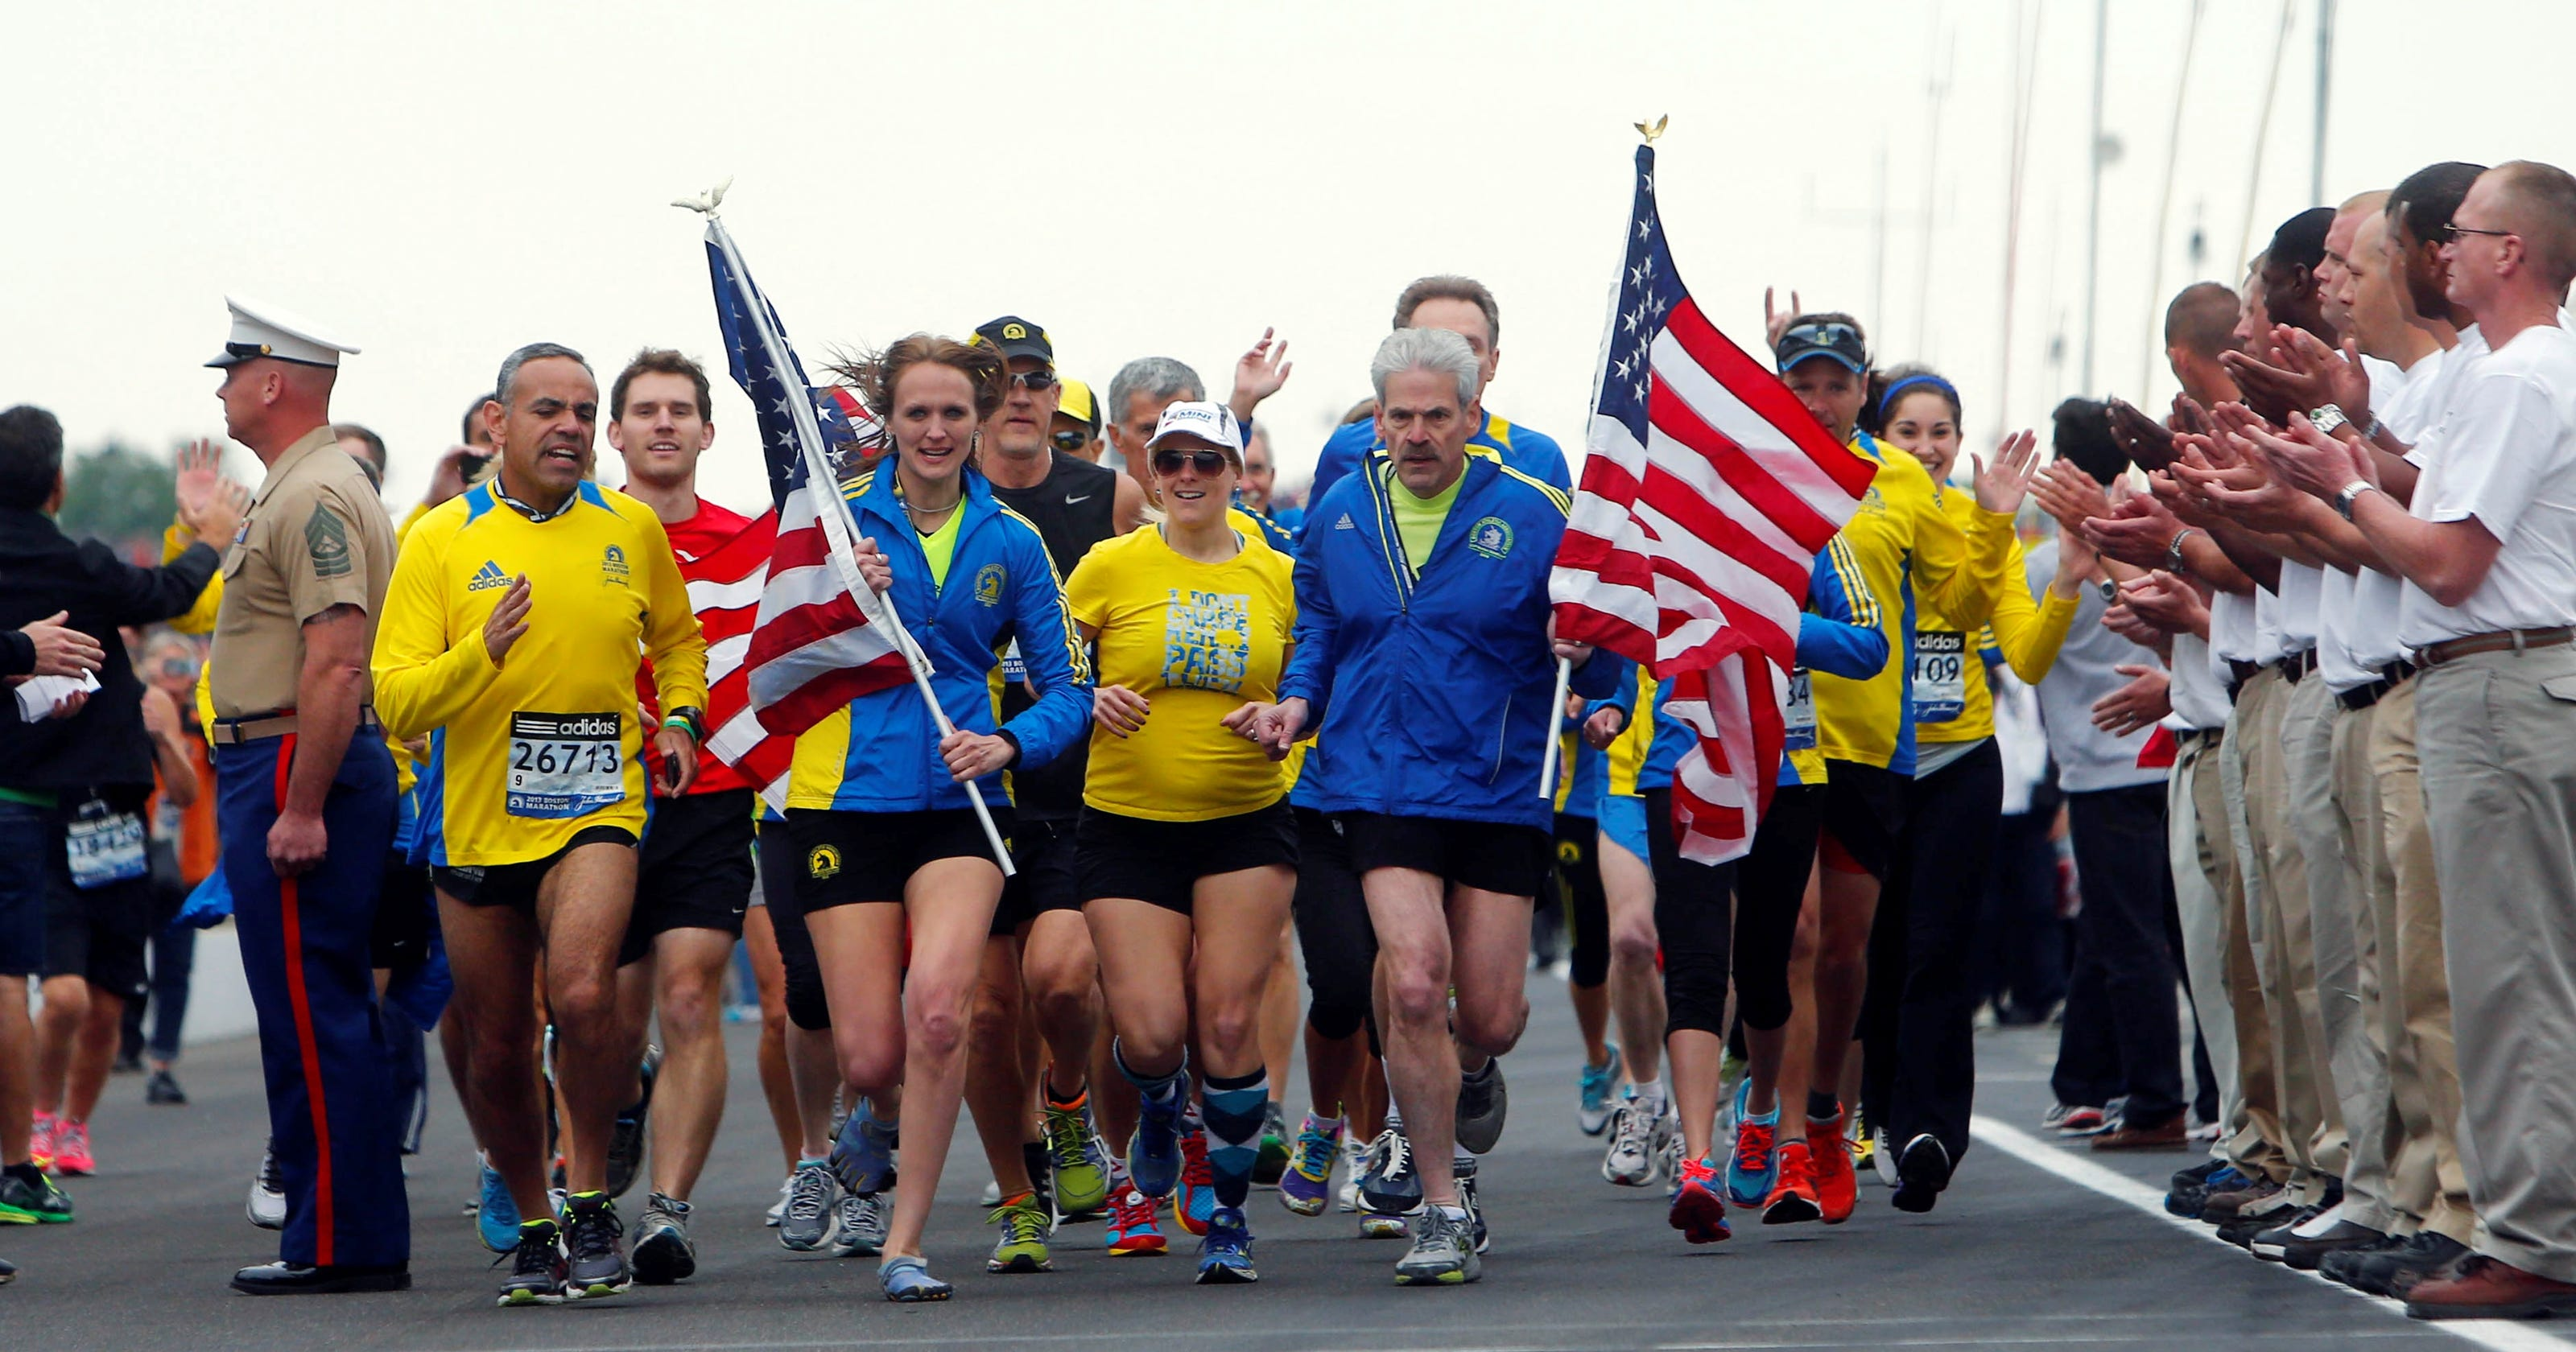 In which order did the runners finish the race?